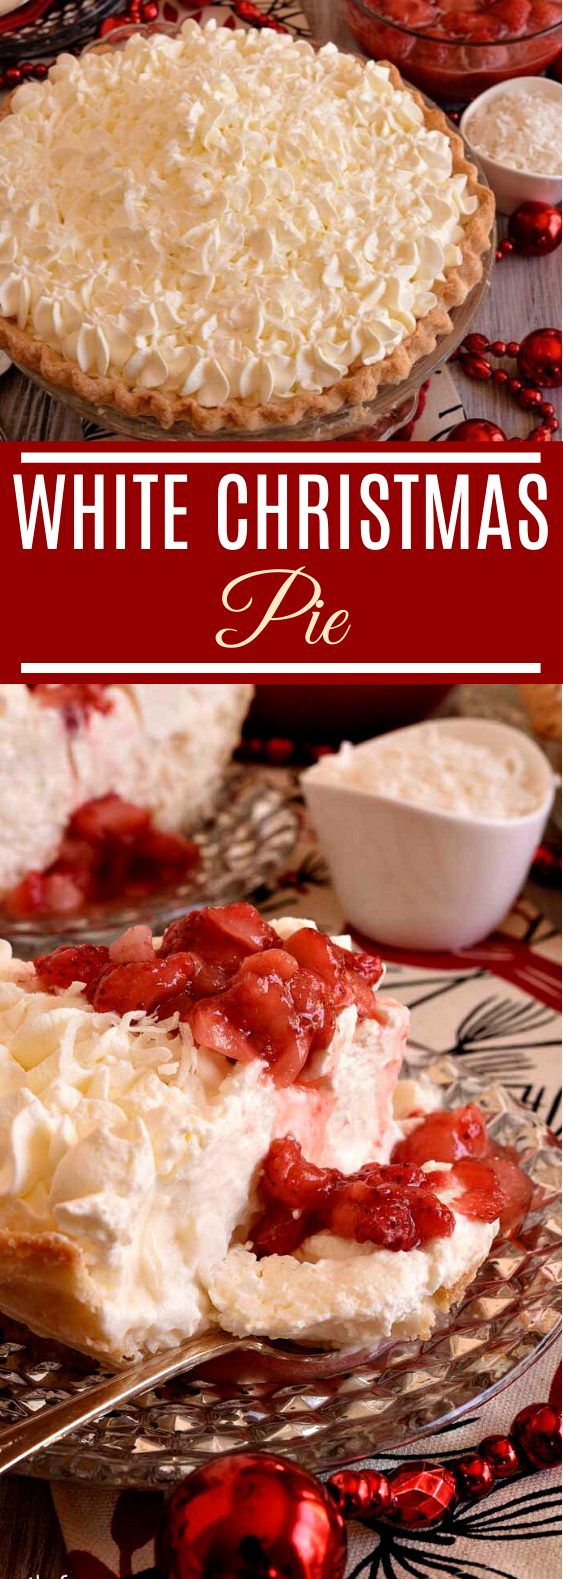 White Christmas Pie #desserts #recipes #baking #pie #pastry